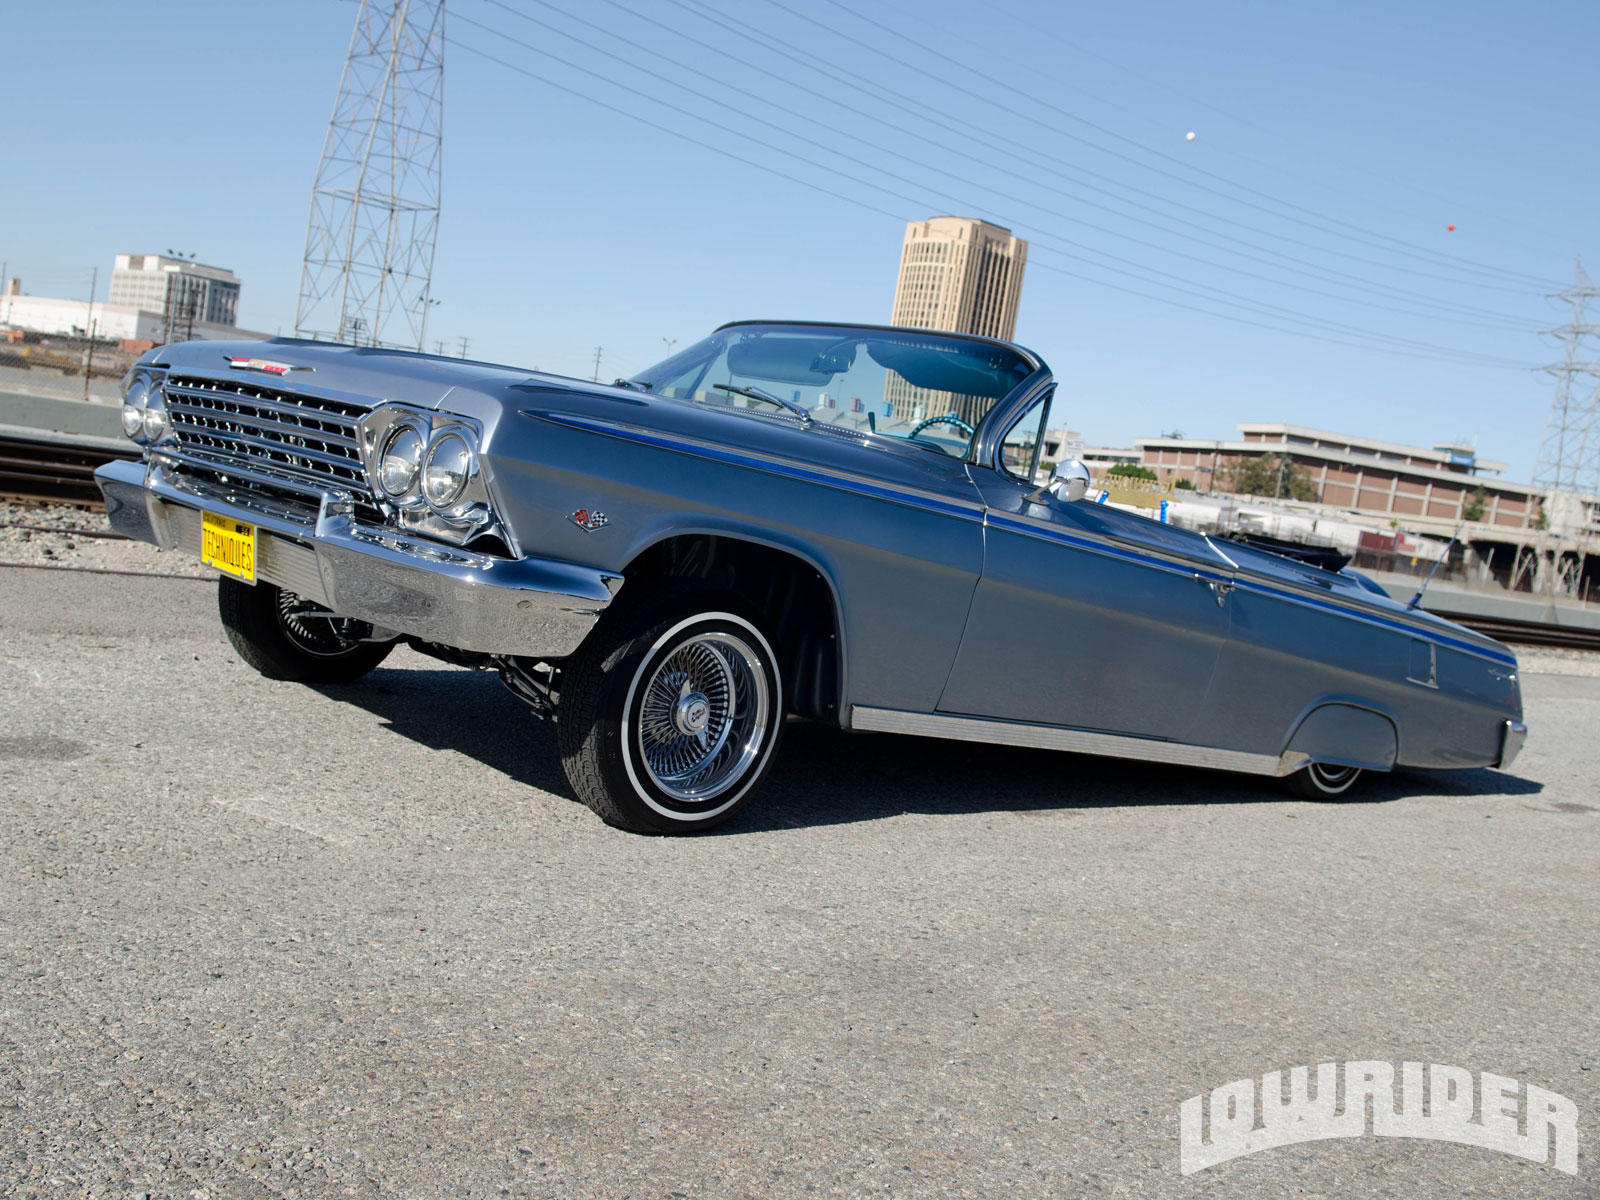 1962 Chevrolet Impala Convertible Only The Strong Survive